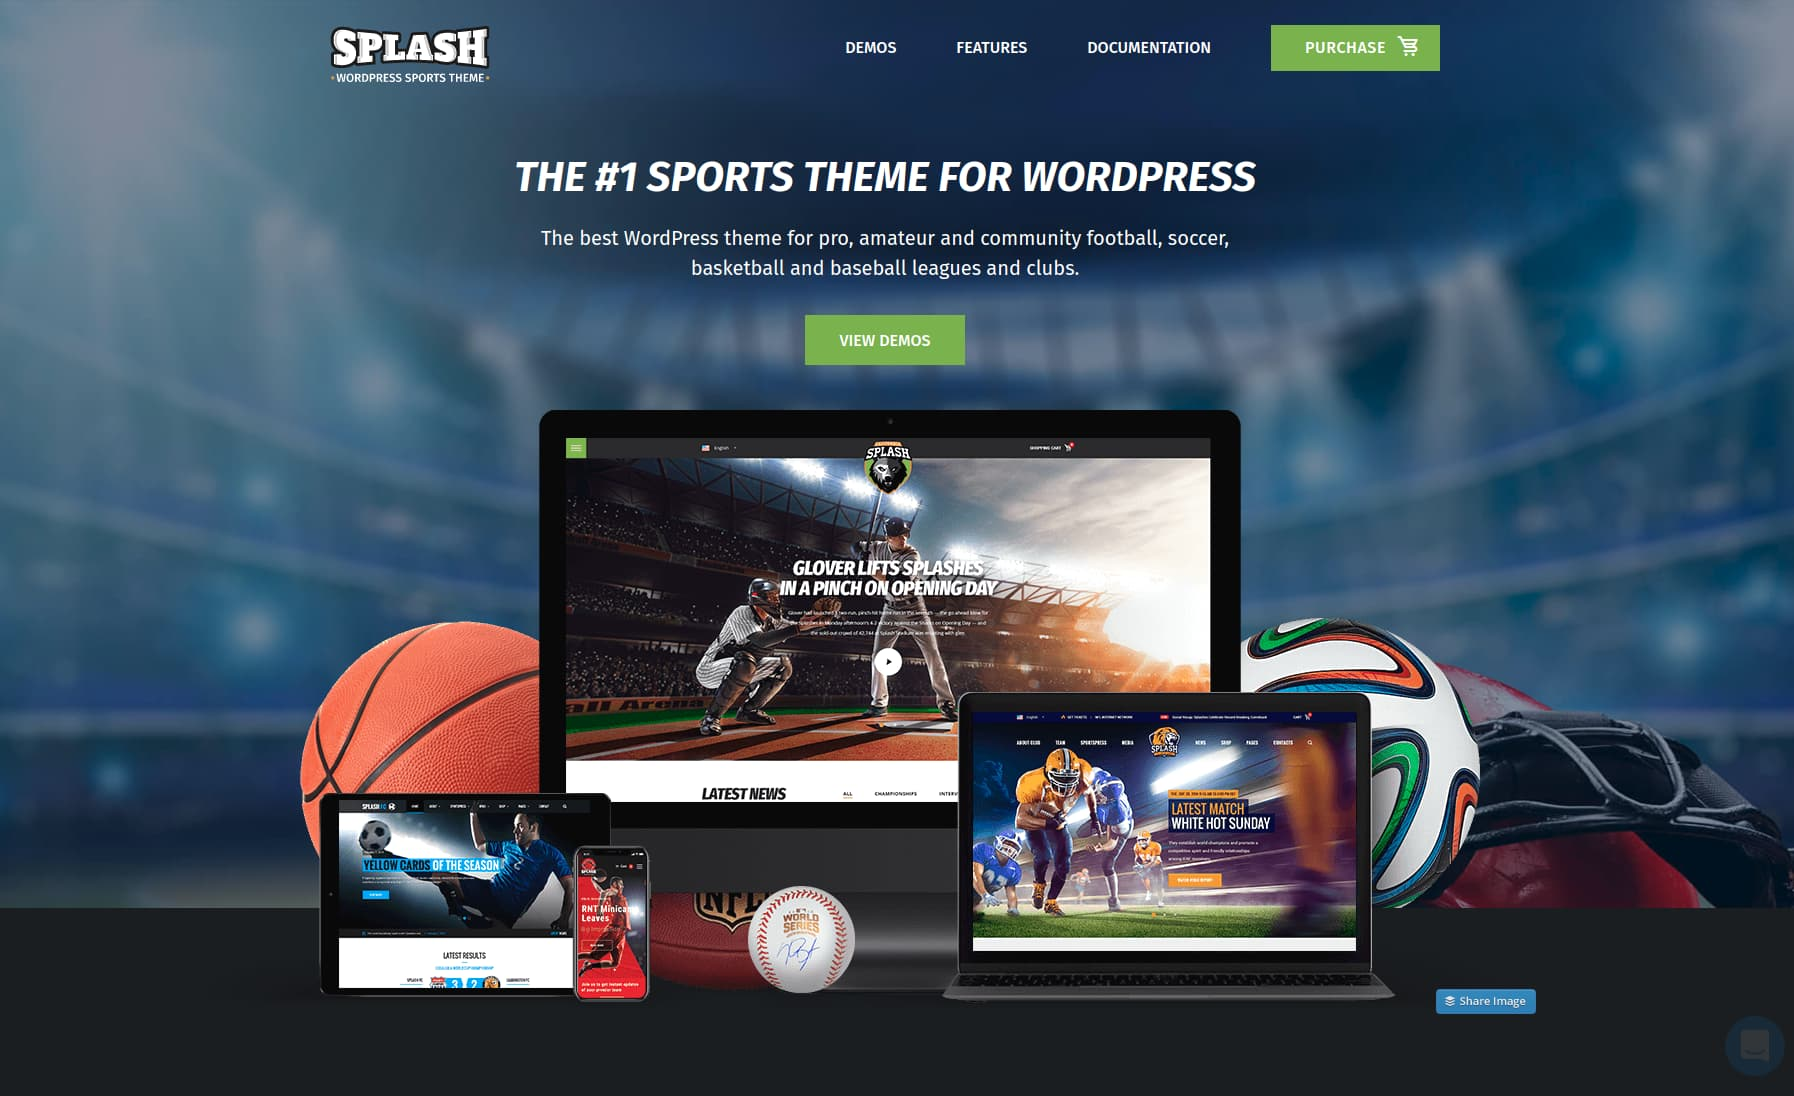 10+ Bootstrap WordPress Video Themes To Build a Video